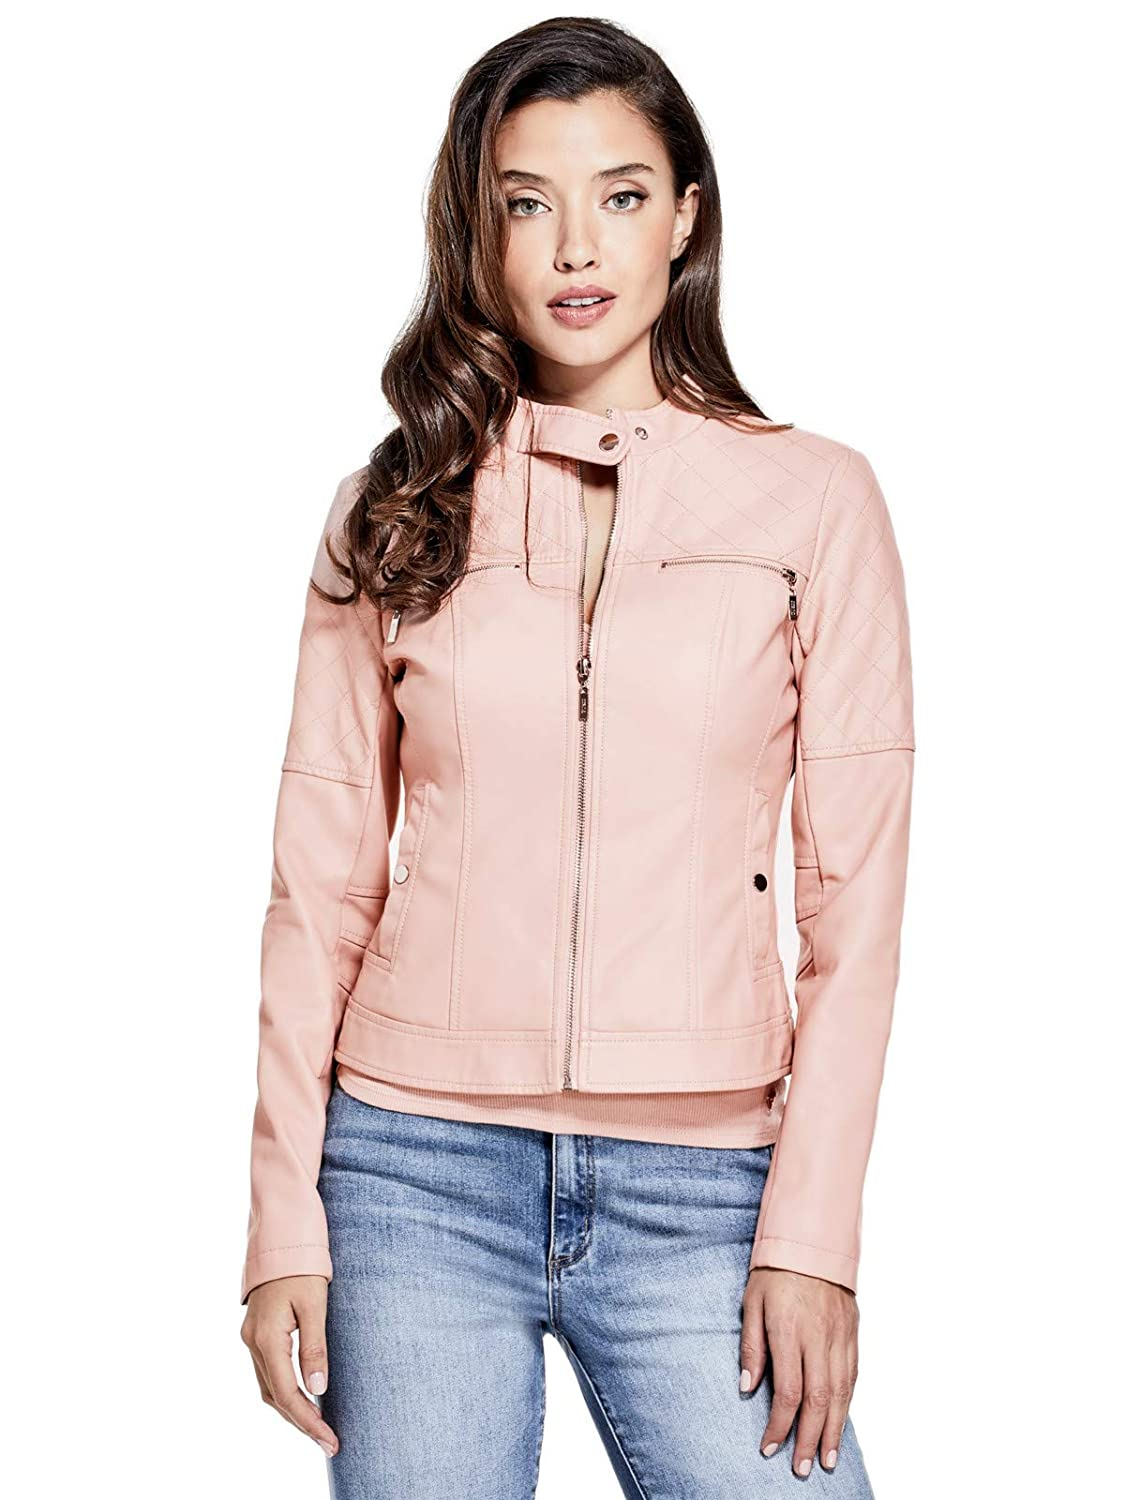 Guess Factory Women's Giardini Quilted Faux-Leather Jacket GuessFactory